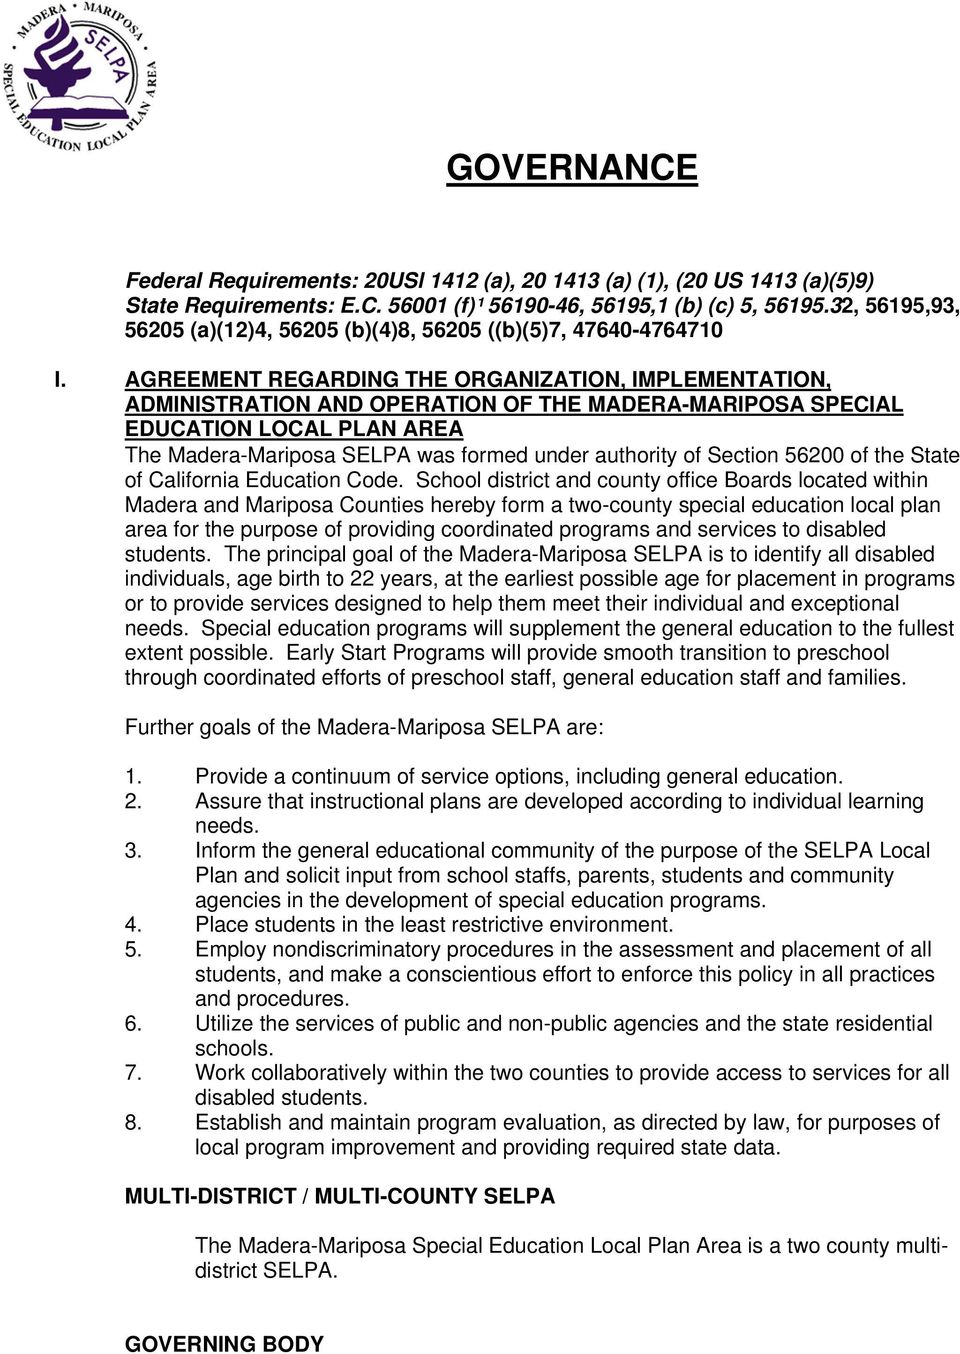 AGREEMENT REGARDING THE ORGANIZATION, IMPLEMENTATION, ADMINISTRATION AND OPERATION OF THE MADERA-MARIPOSA SPECIAL EDUCATION LOCAL PLAN AREA The Madera-Mariposa SELPA was formed under authority of